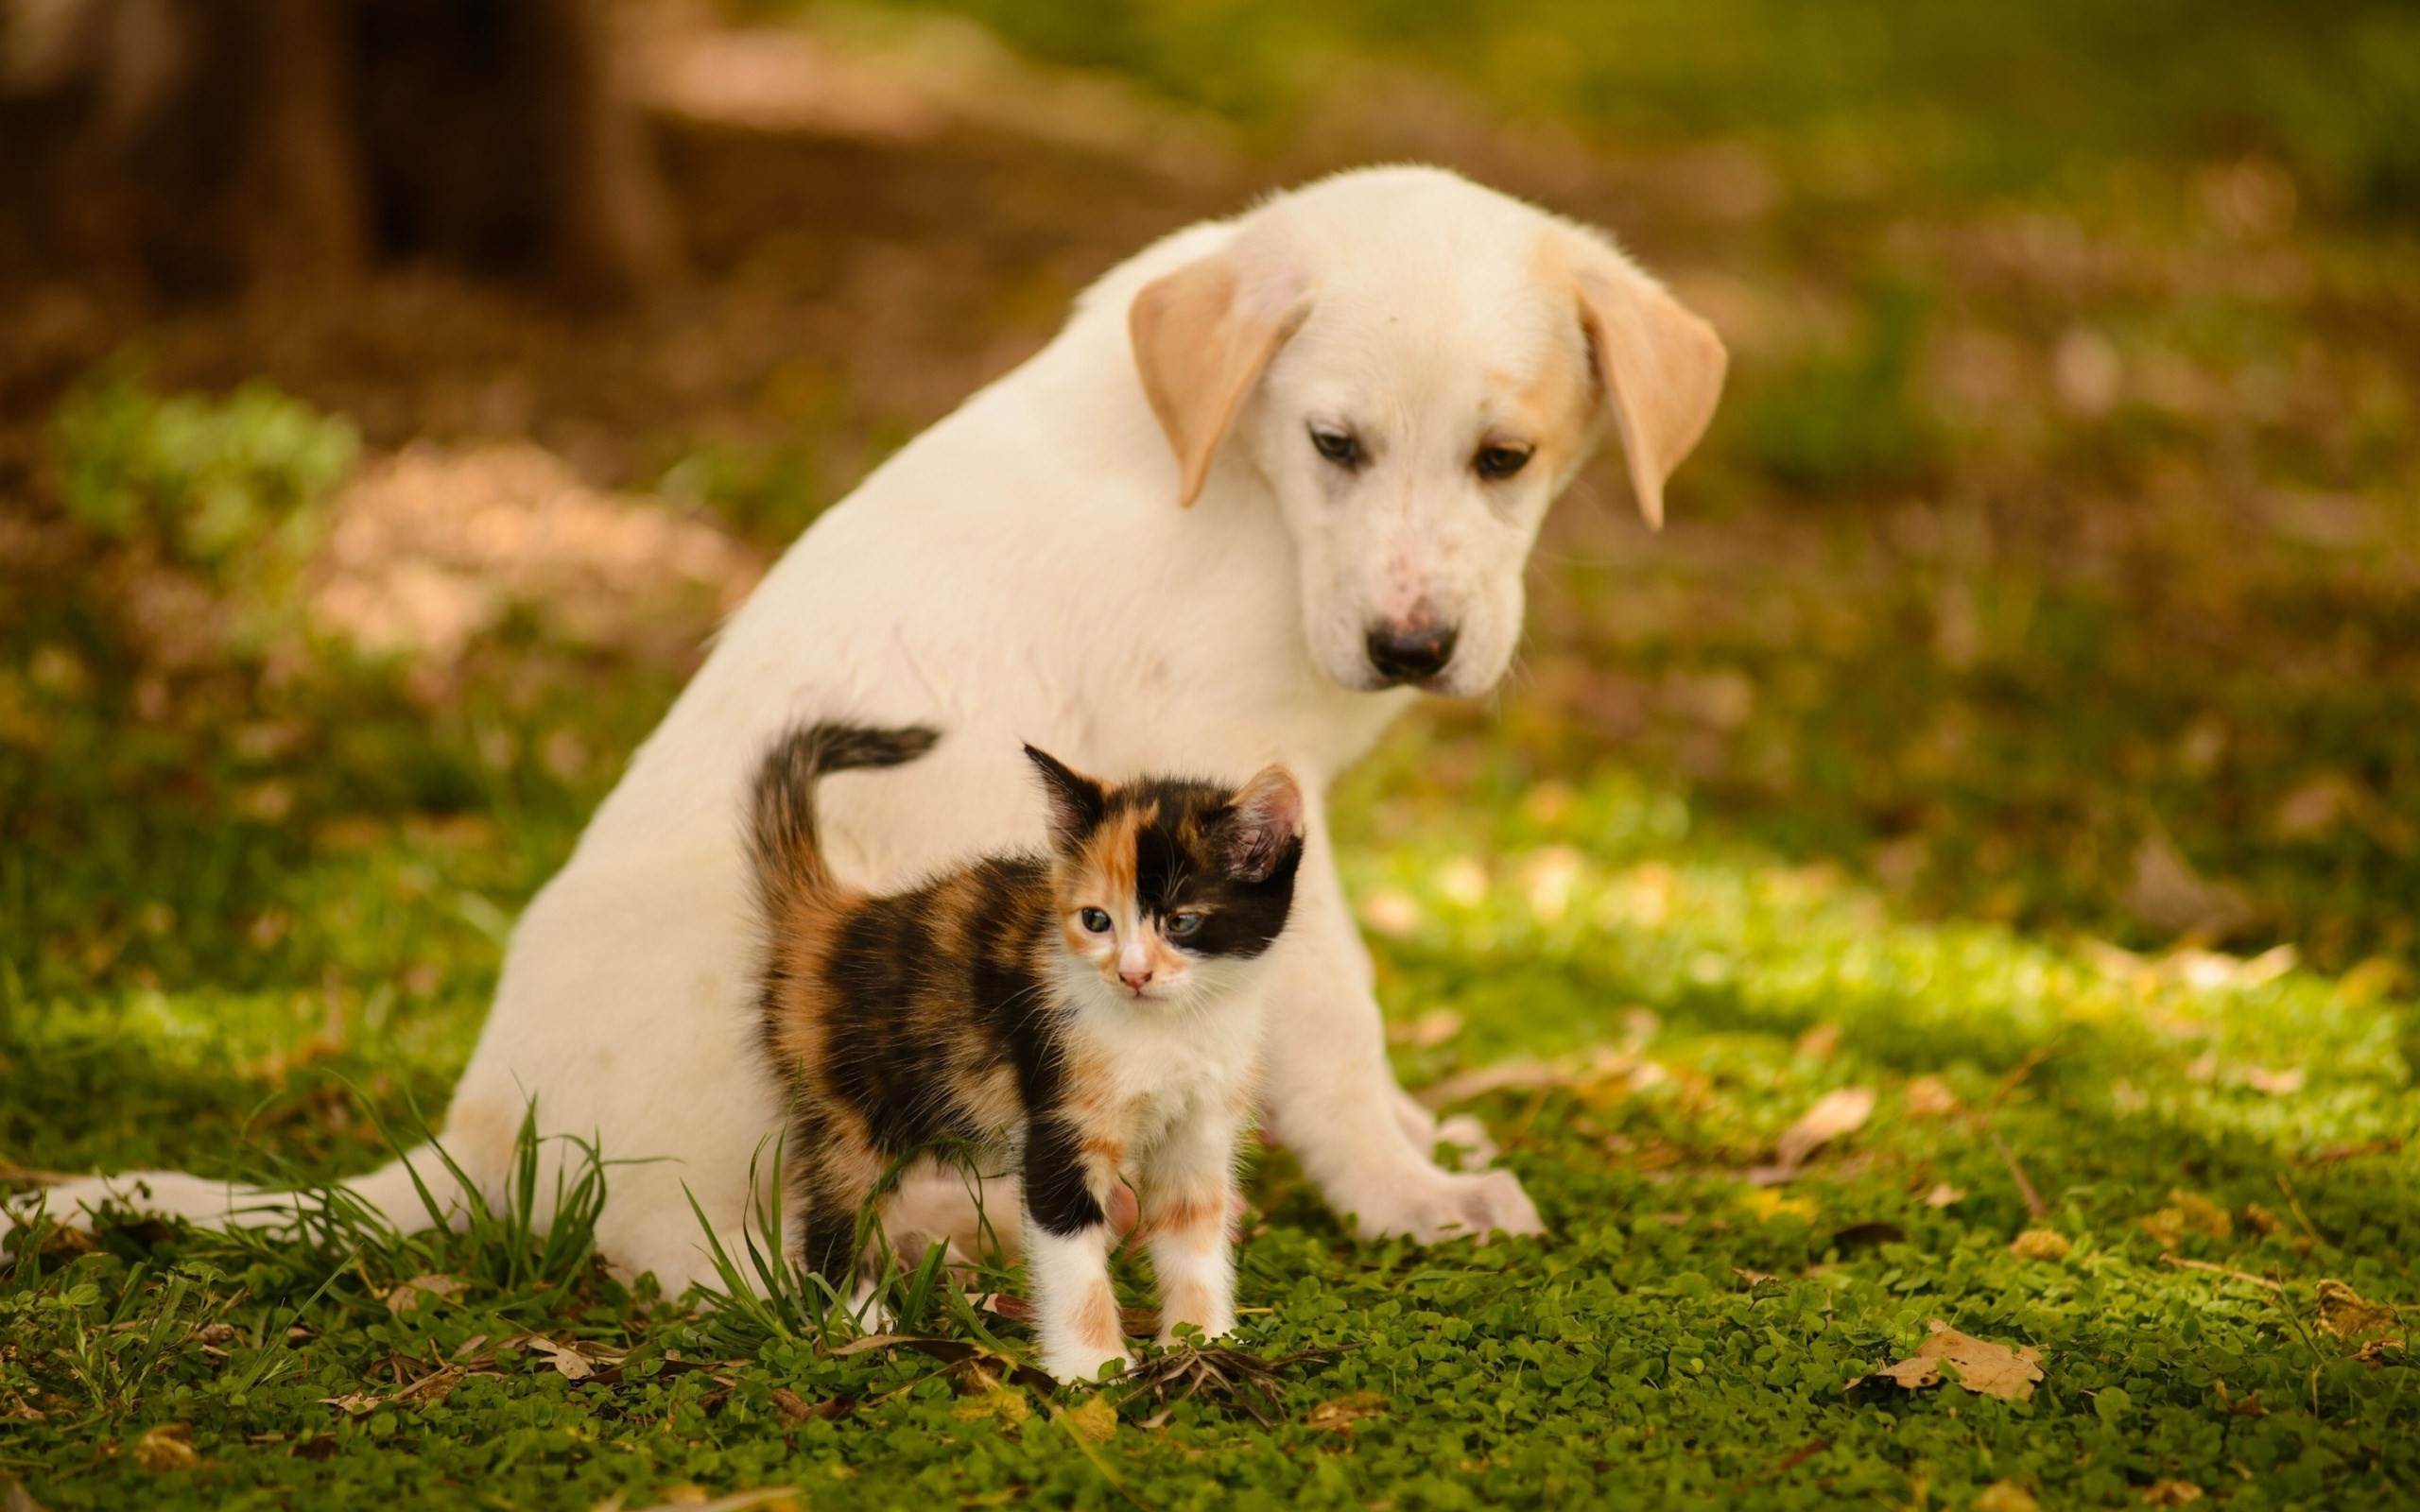 Dogs And Puppies Wallpaper Puppies and Kittens Wa...